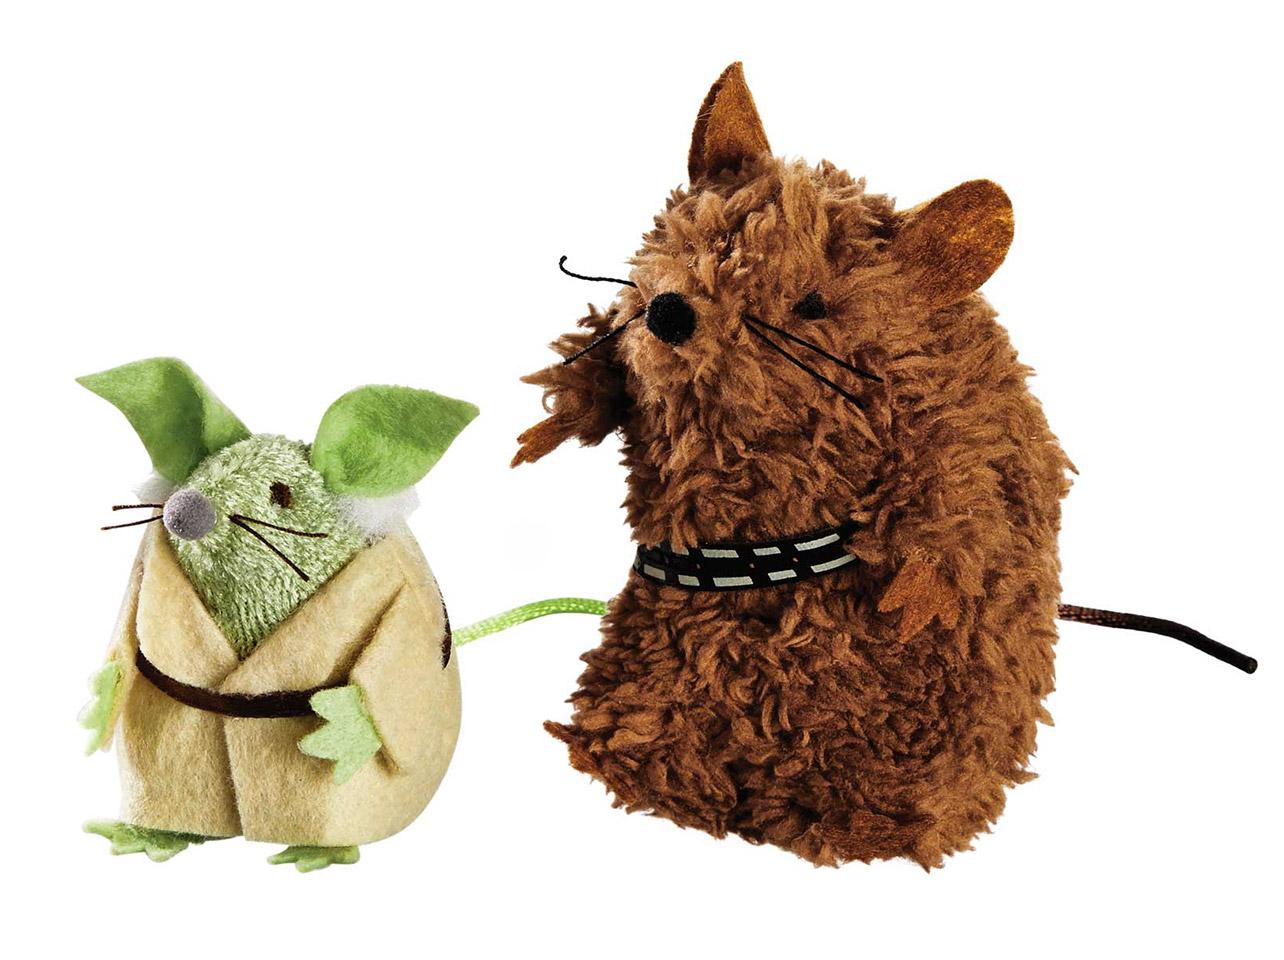 Star Wars Toys and Outfits for the Pet Set